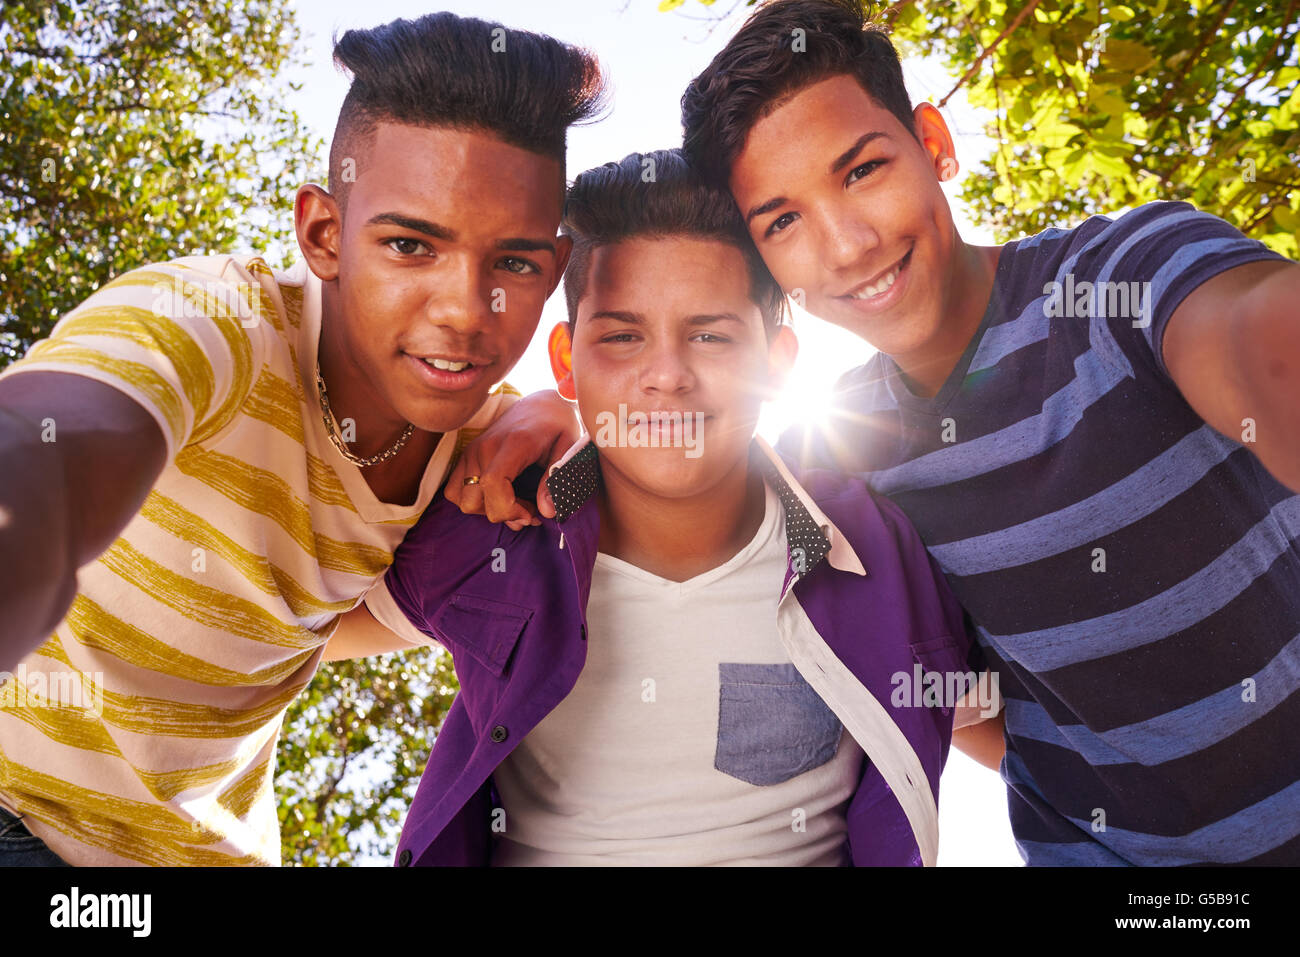 Youth culture, multi-ethnic teens outdoors embracing and looking happy at camera. - Stock Image